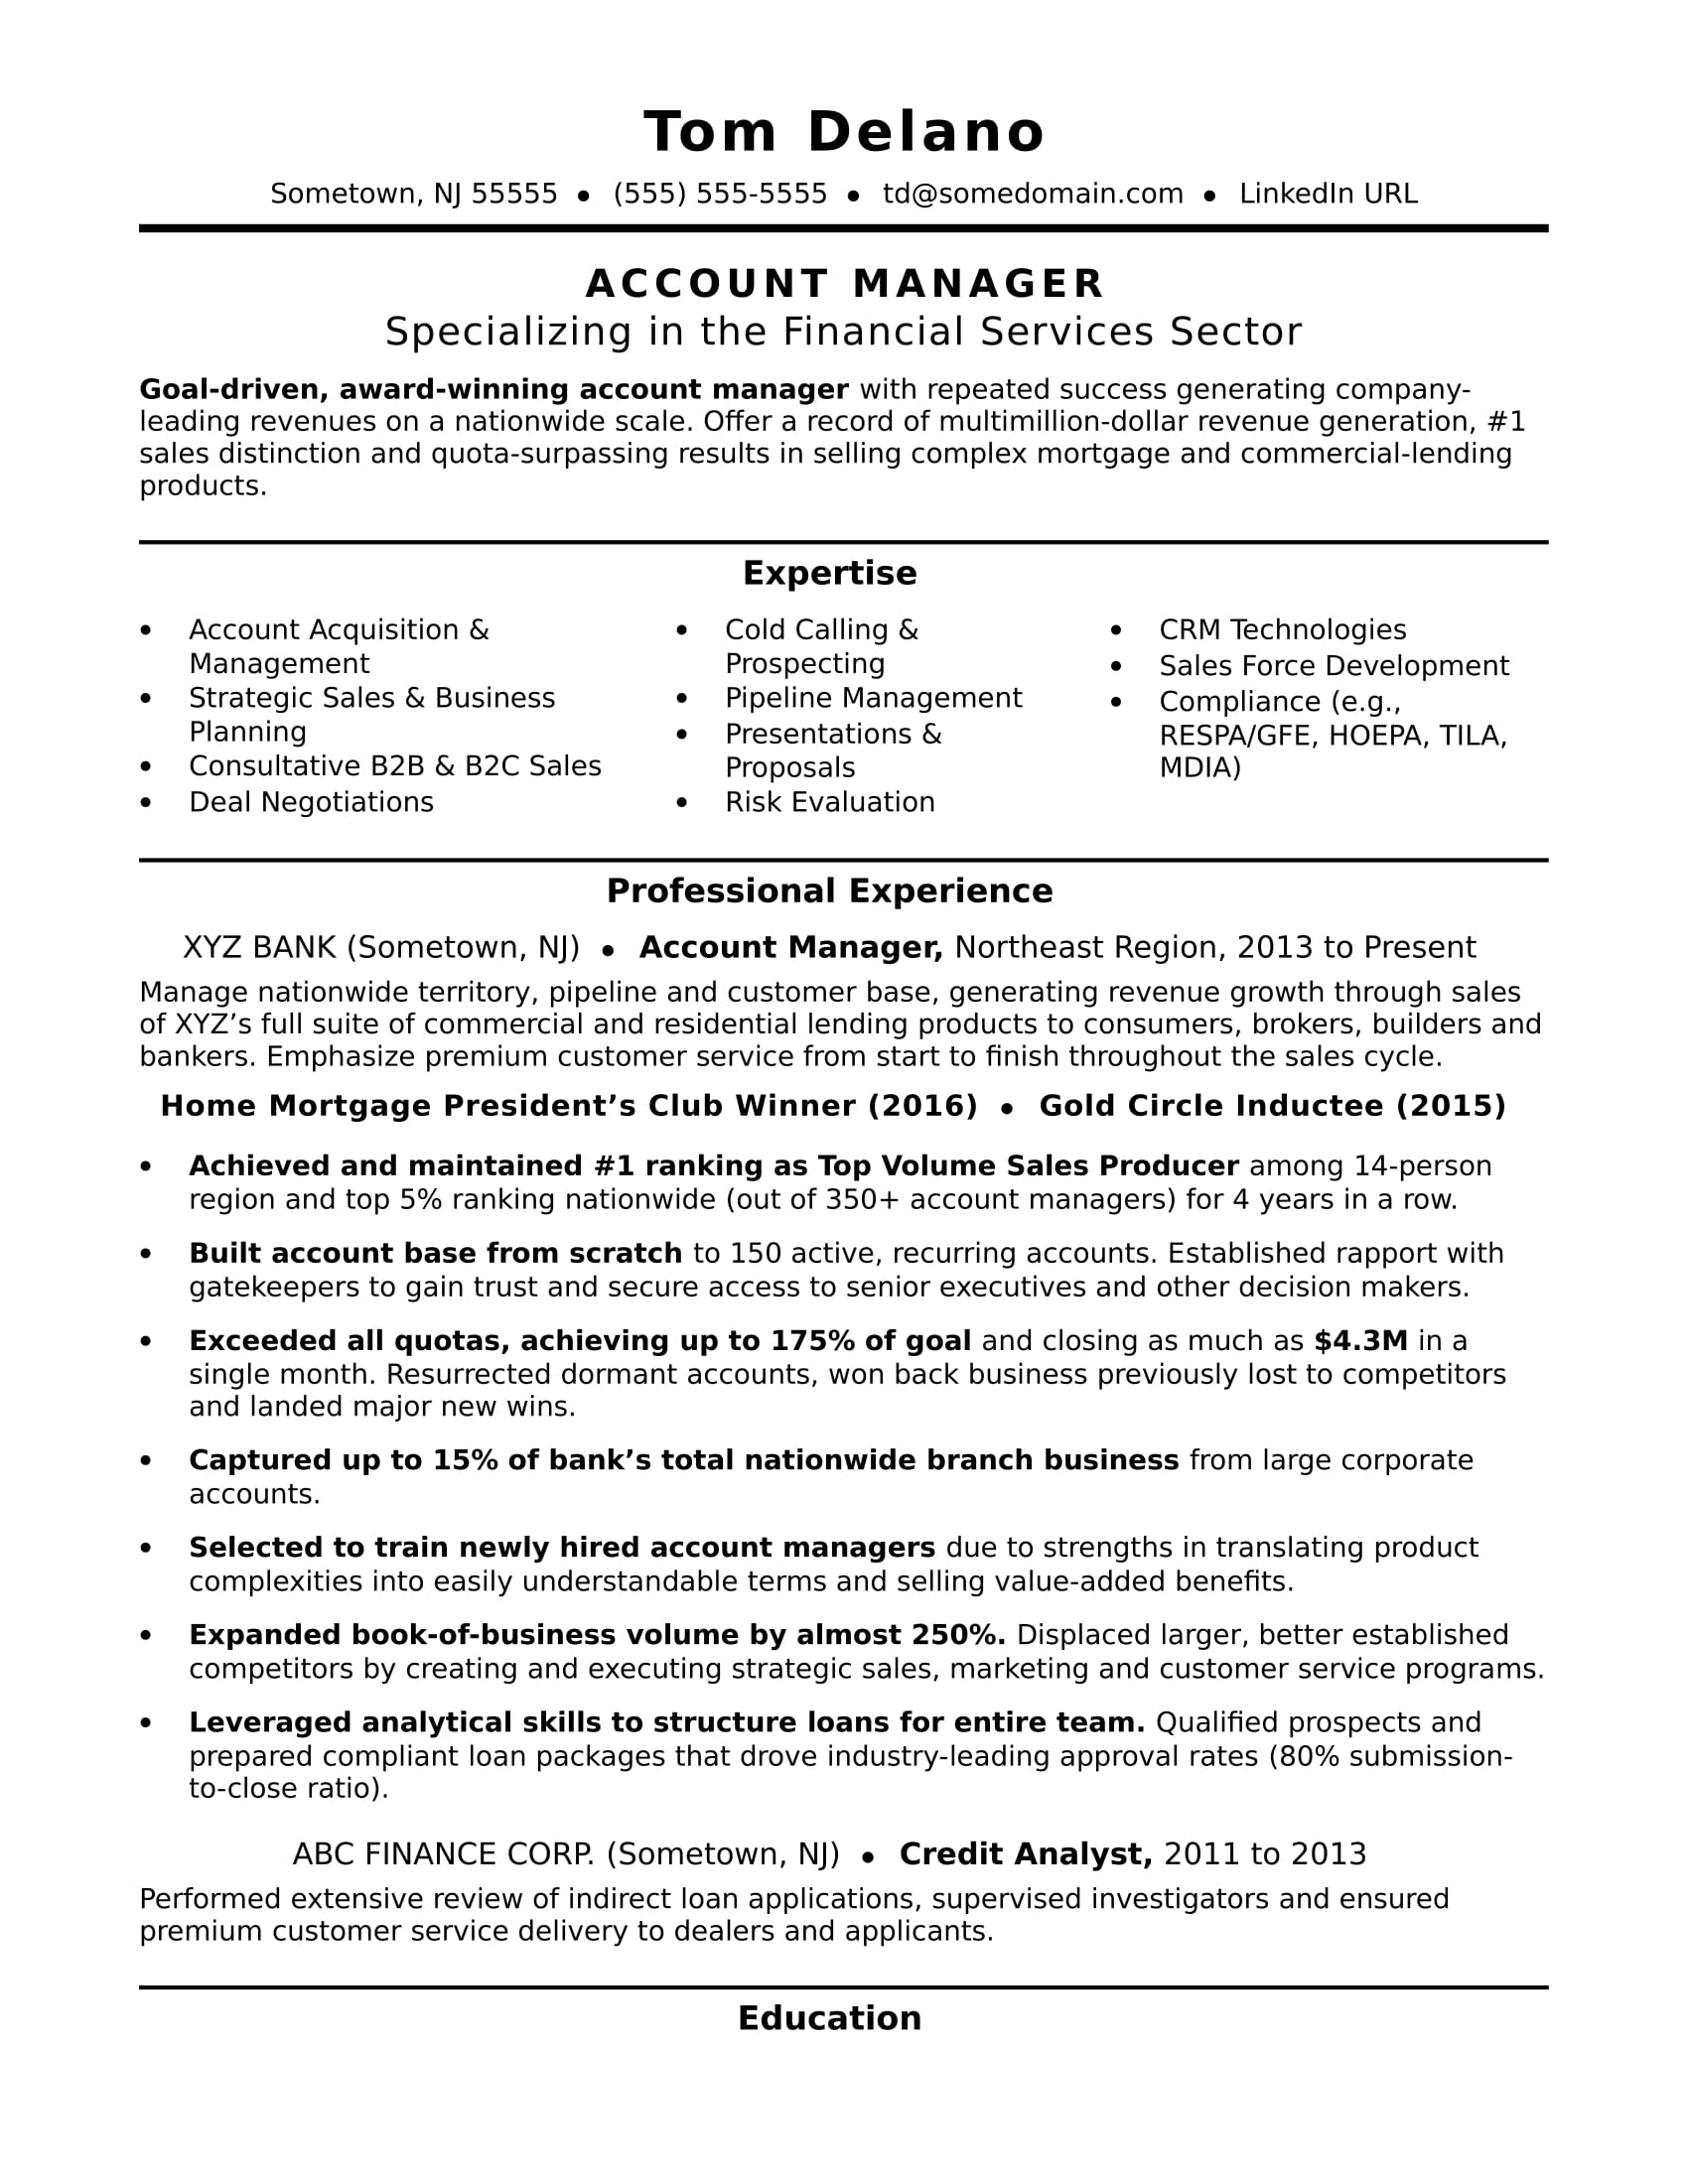 Resume Format For Accounts Manager Account Manager Resume Sample Monster